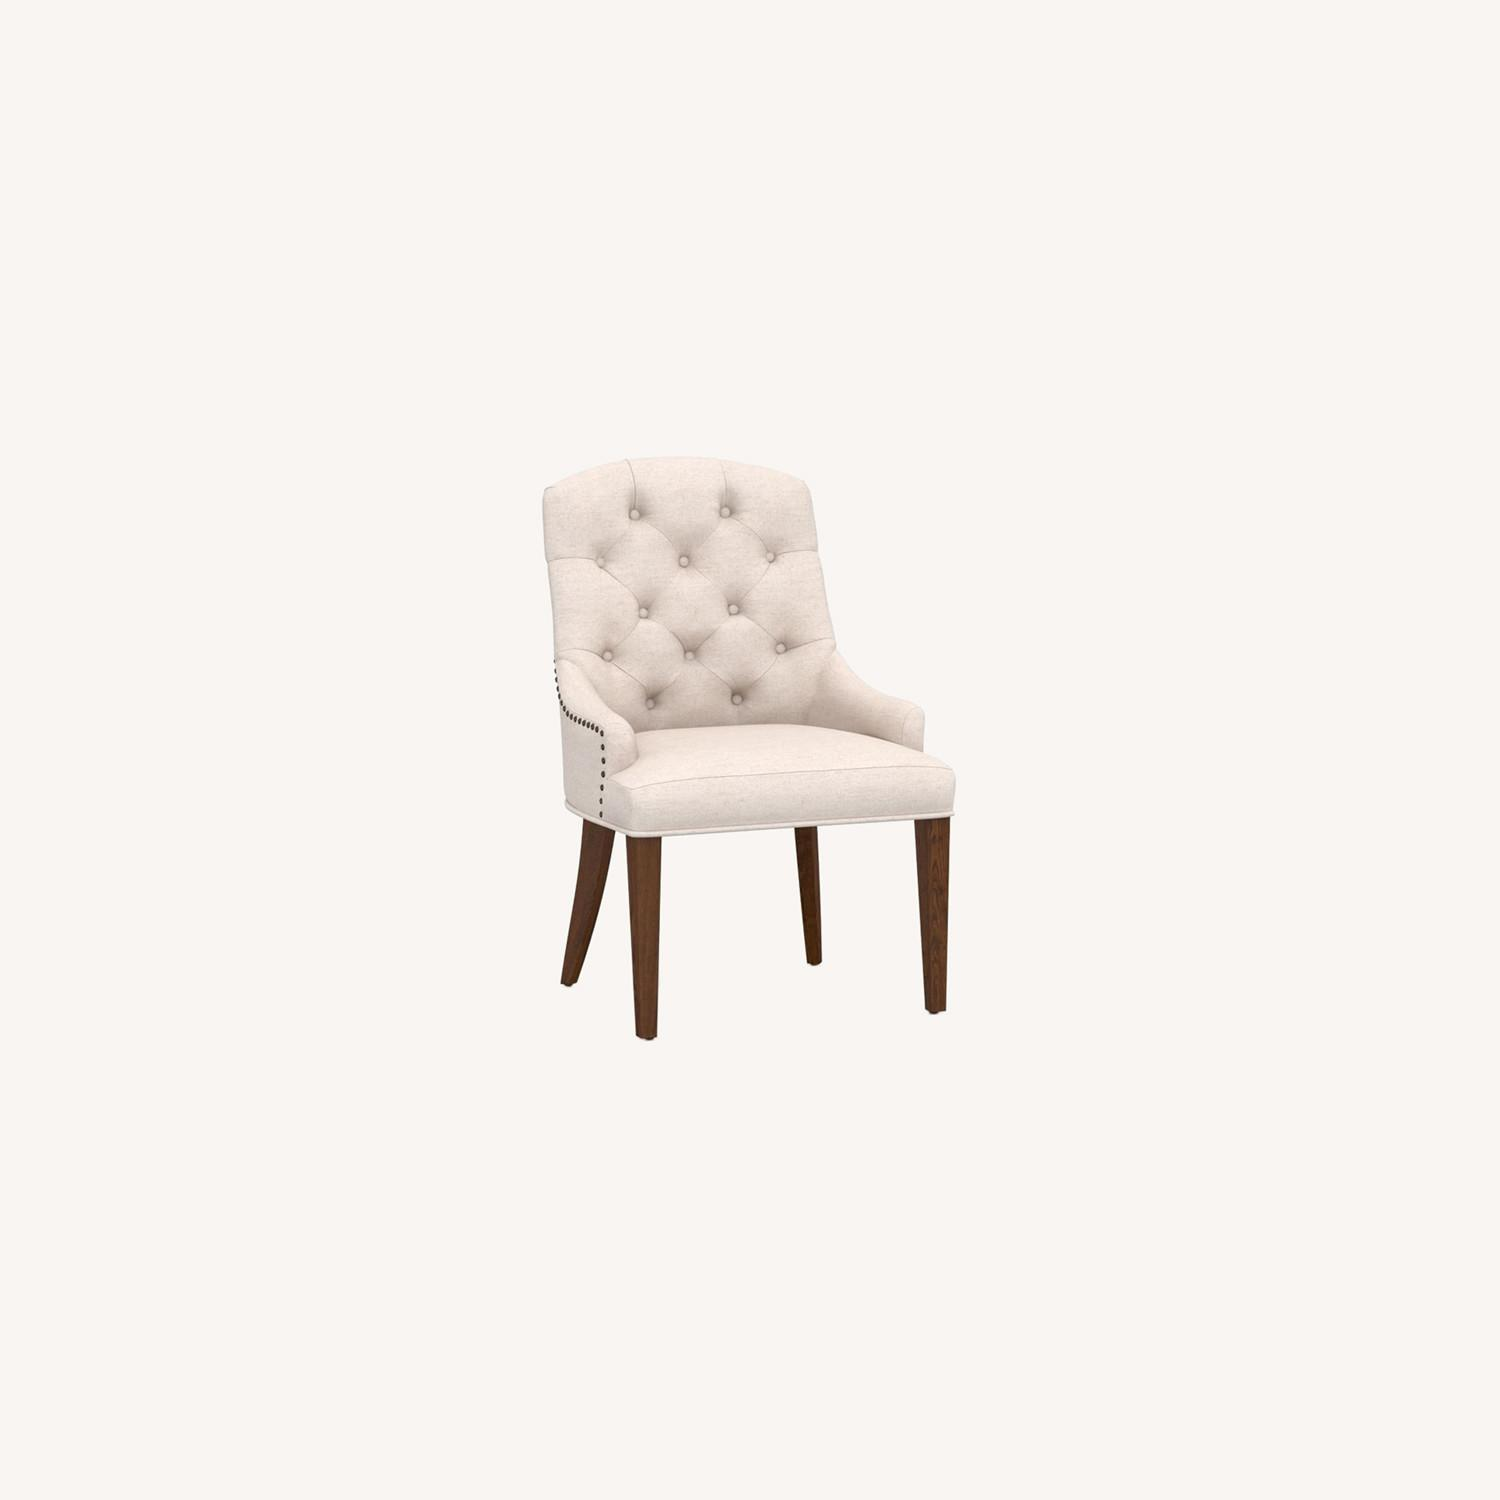 Pottery Barn Lorraine Upholstered Tufted Armchair - image-0